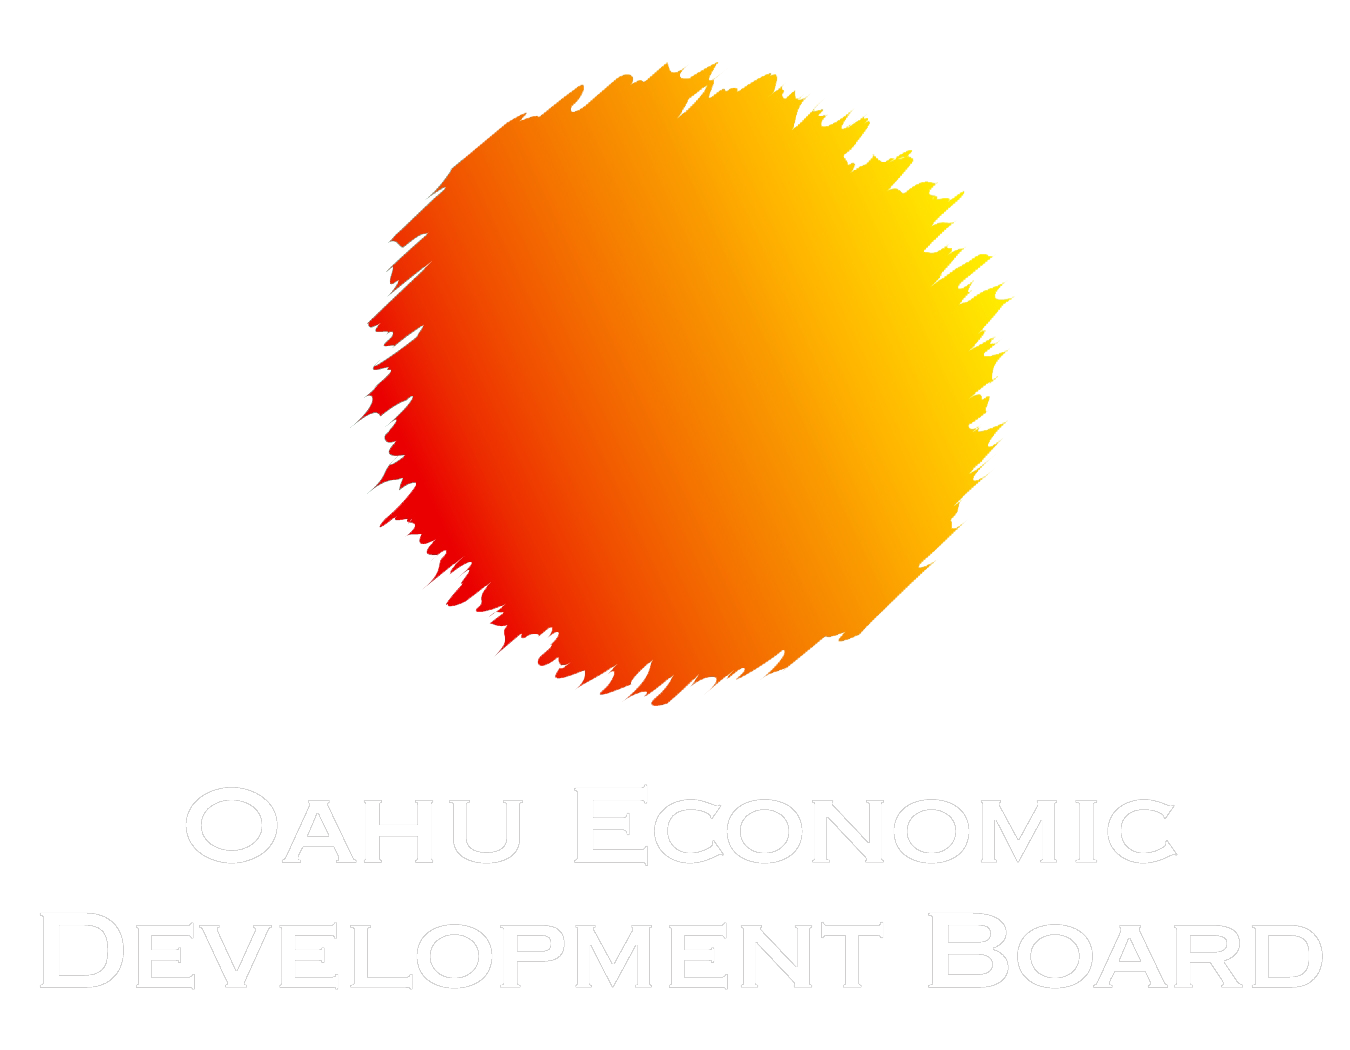 Oahu Economic Development Board